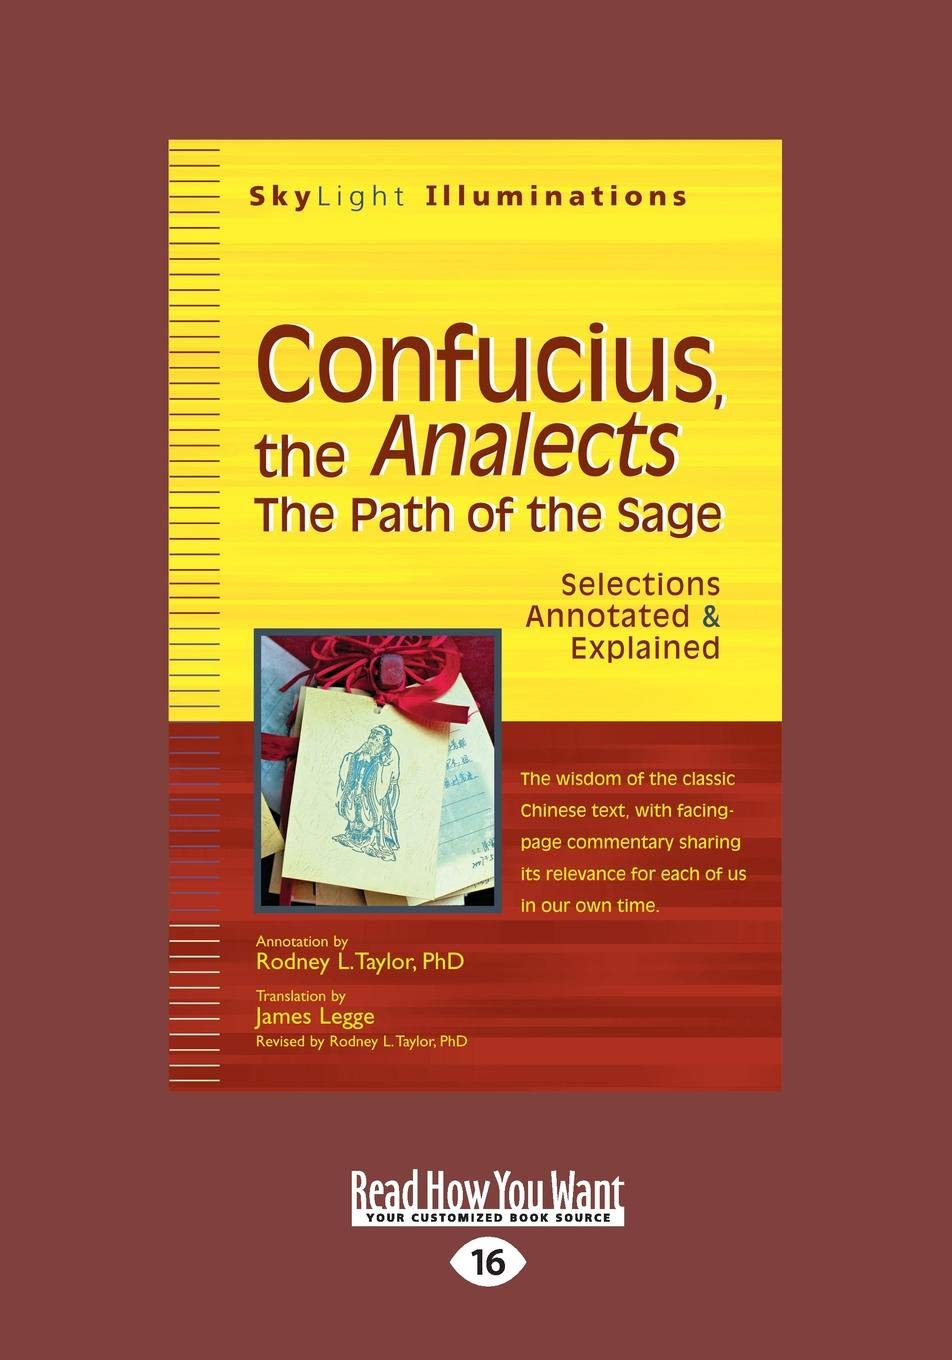 Confucius, The Analects: The Path of the Sage-Selections Annotated &  Explained Paperback – Large Print, August 26, 2014